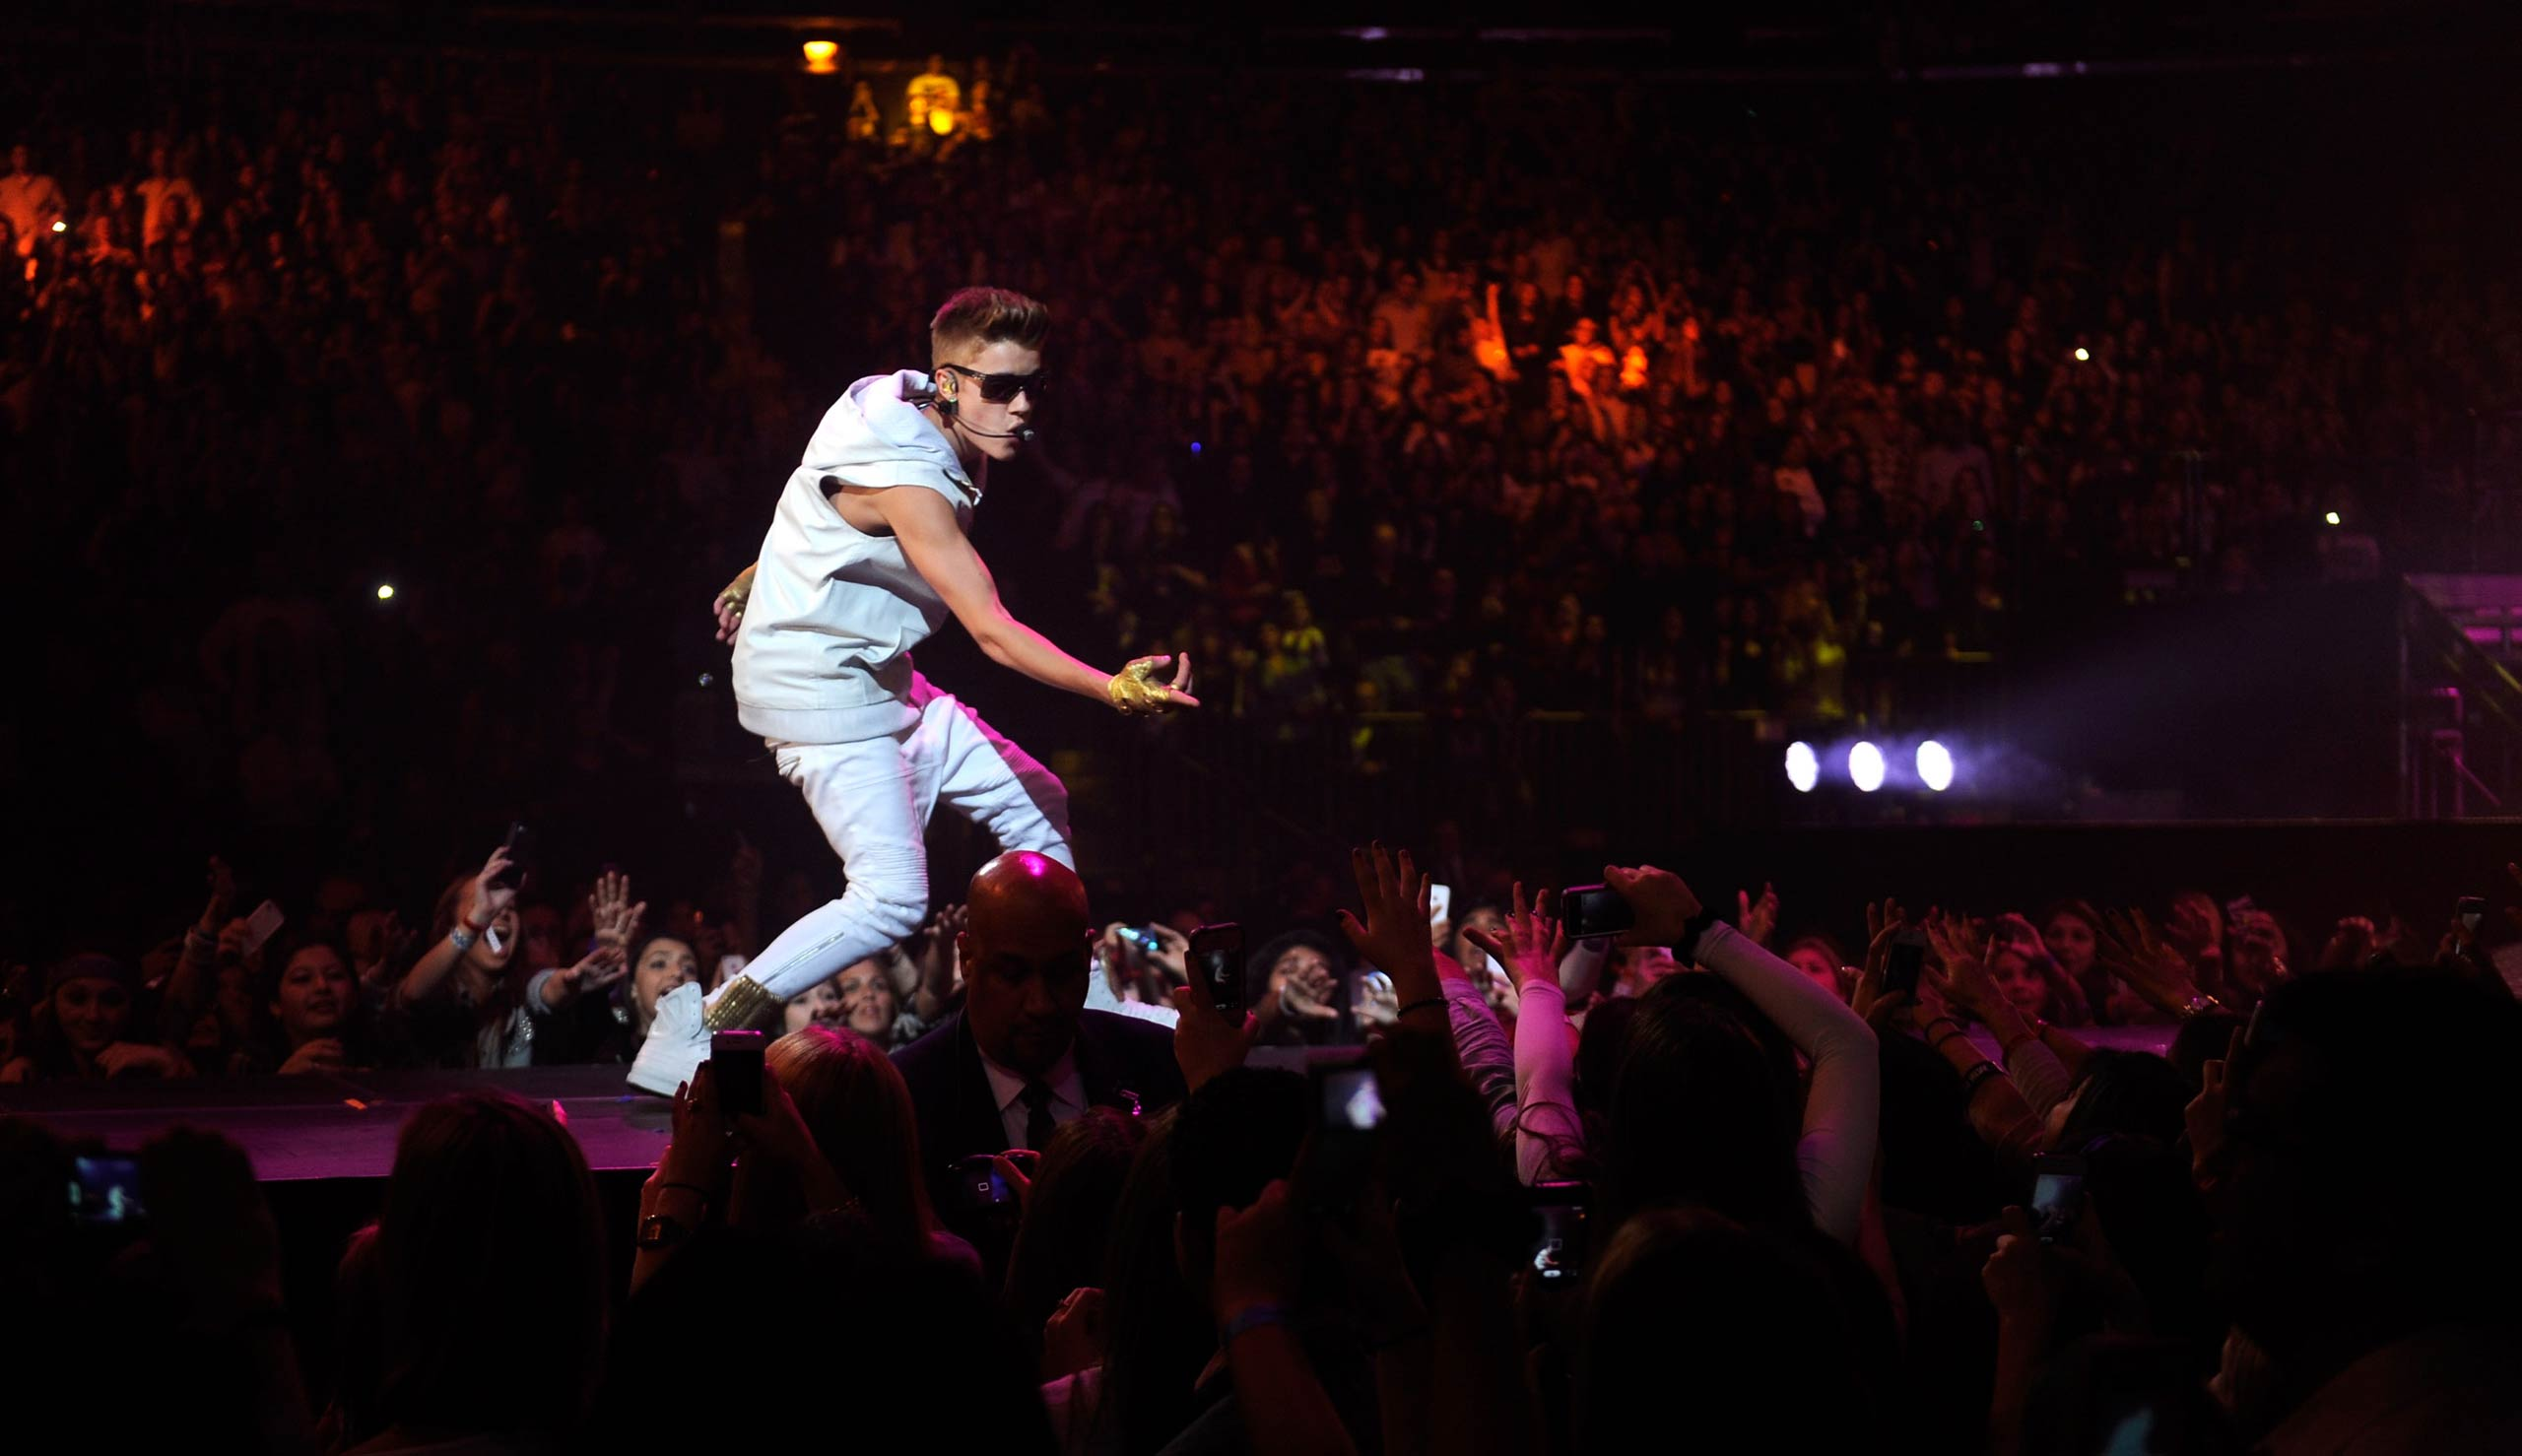 Justin Bieber performs at Madison Square Garden in New York City in 2012.